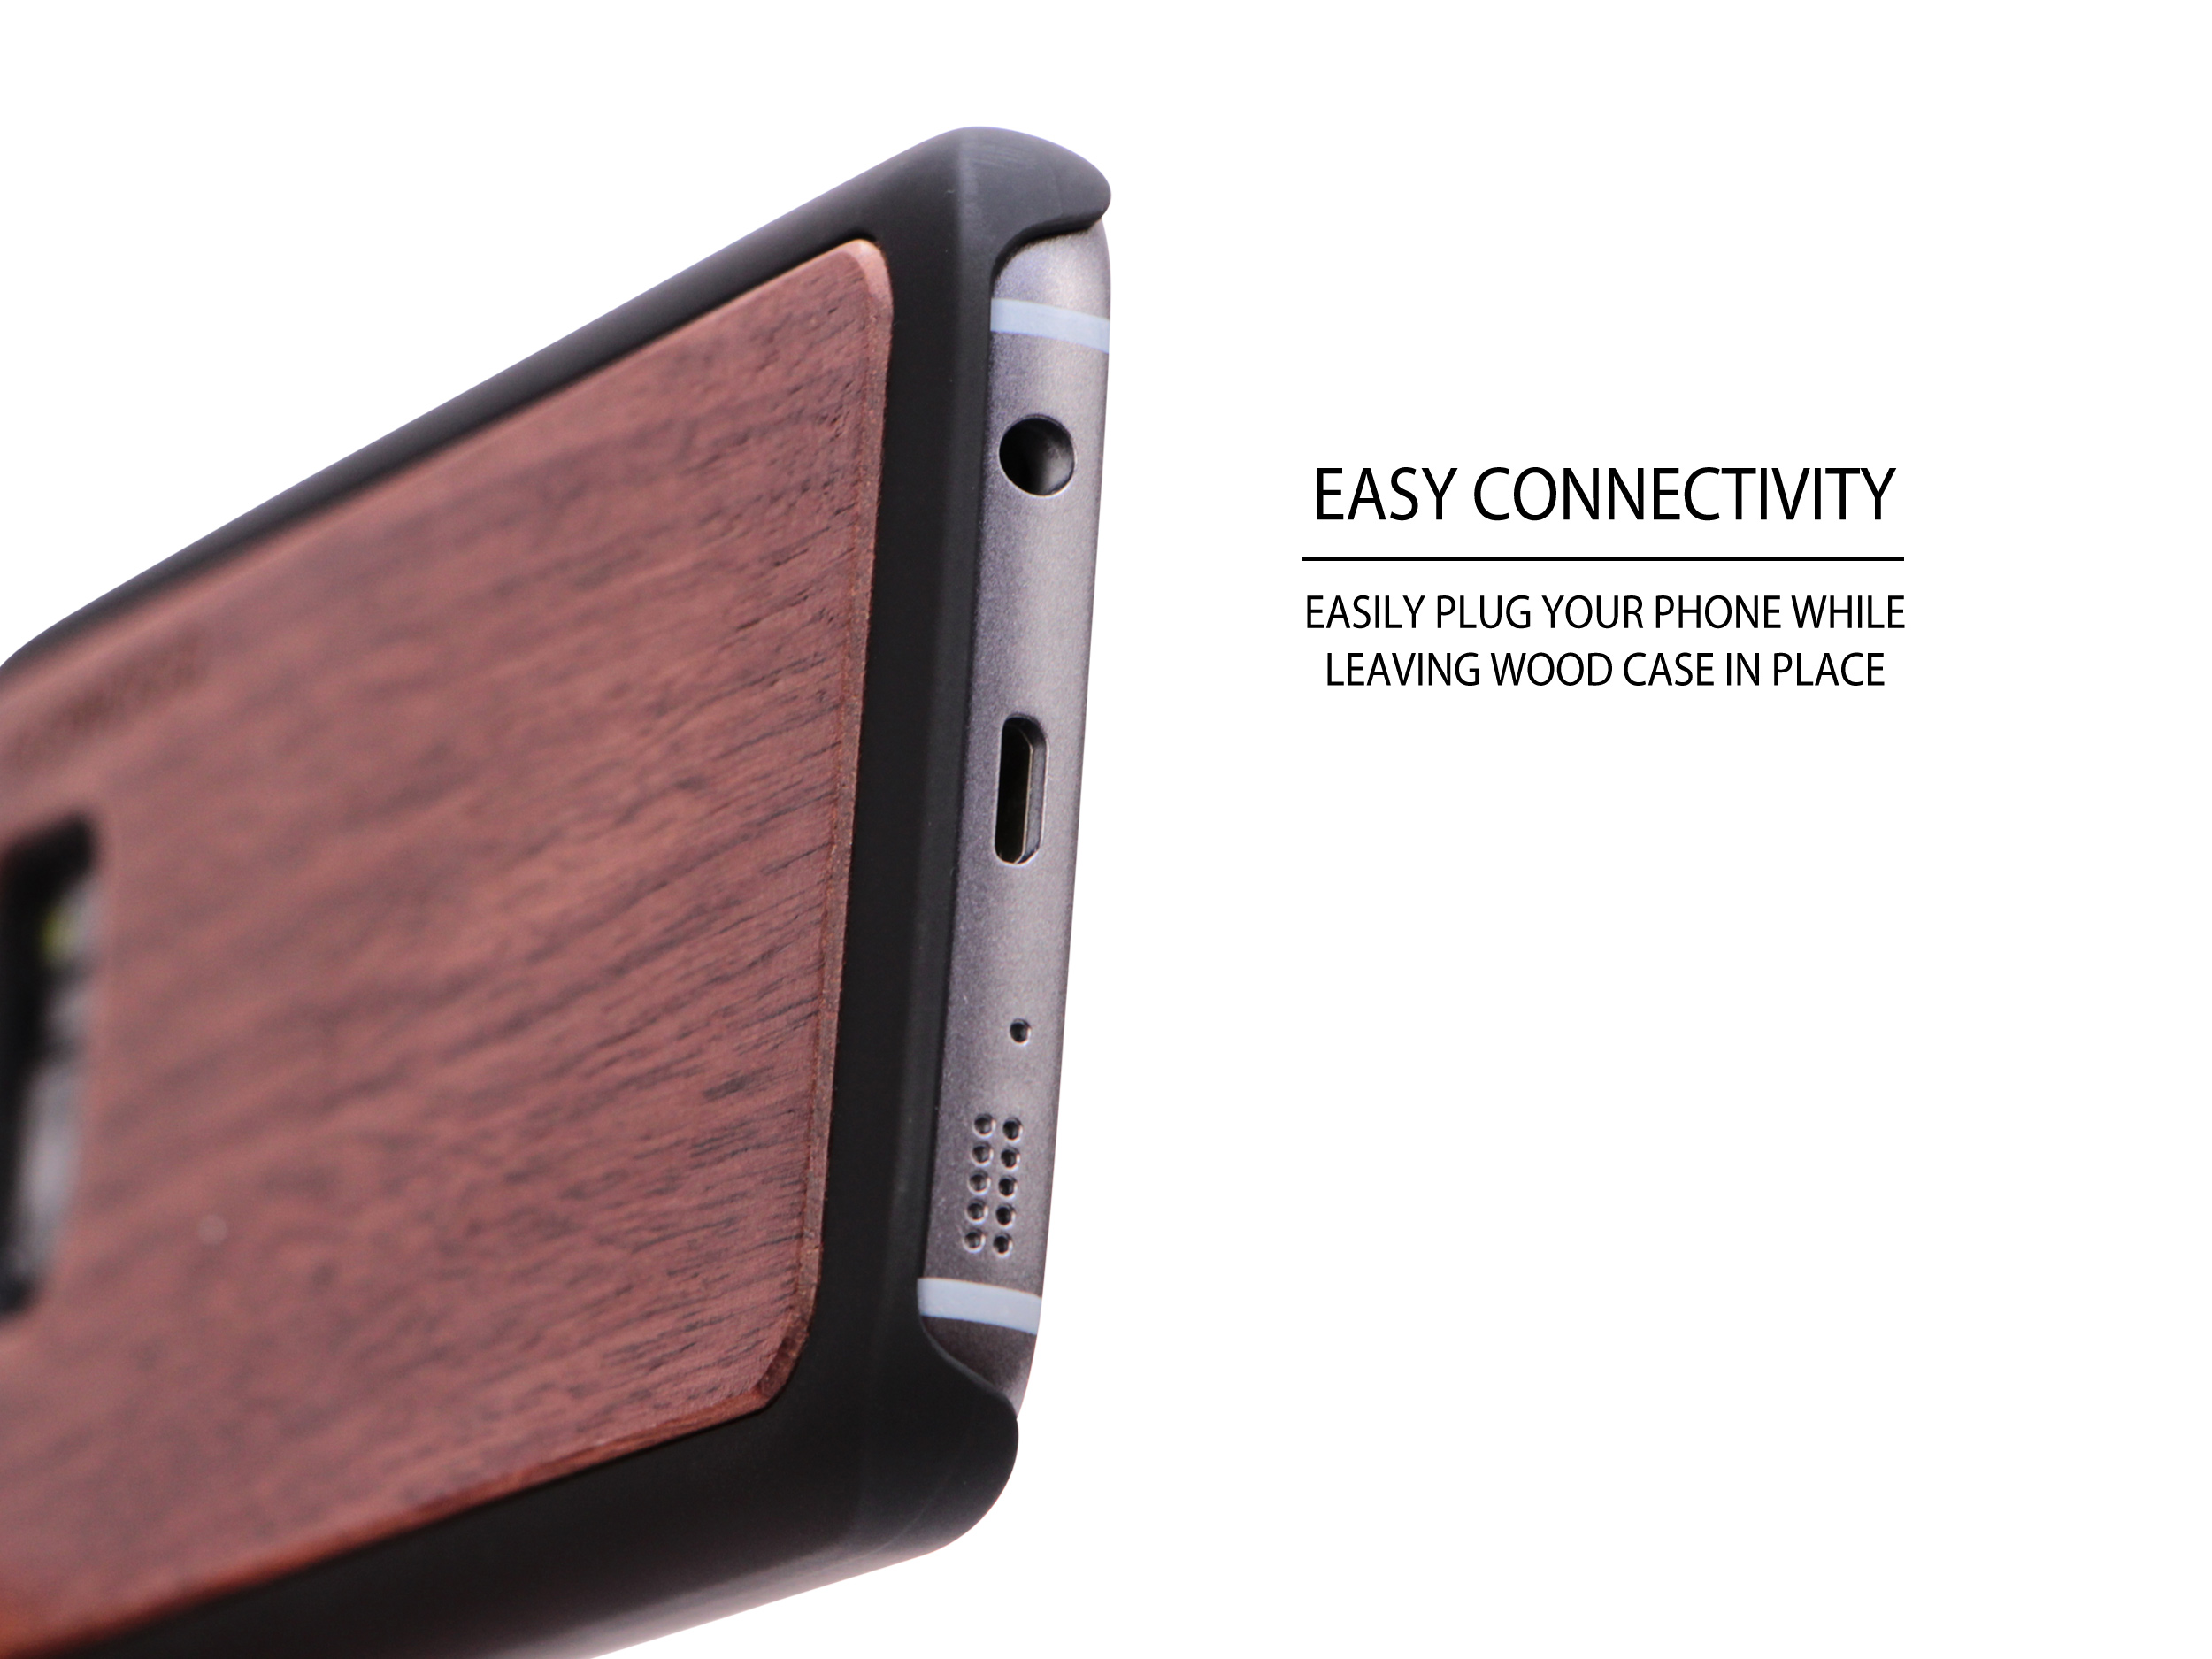 Samsung Galaxy S7 wood case walnut socket